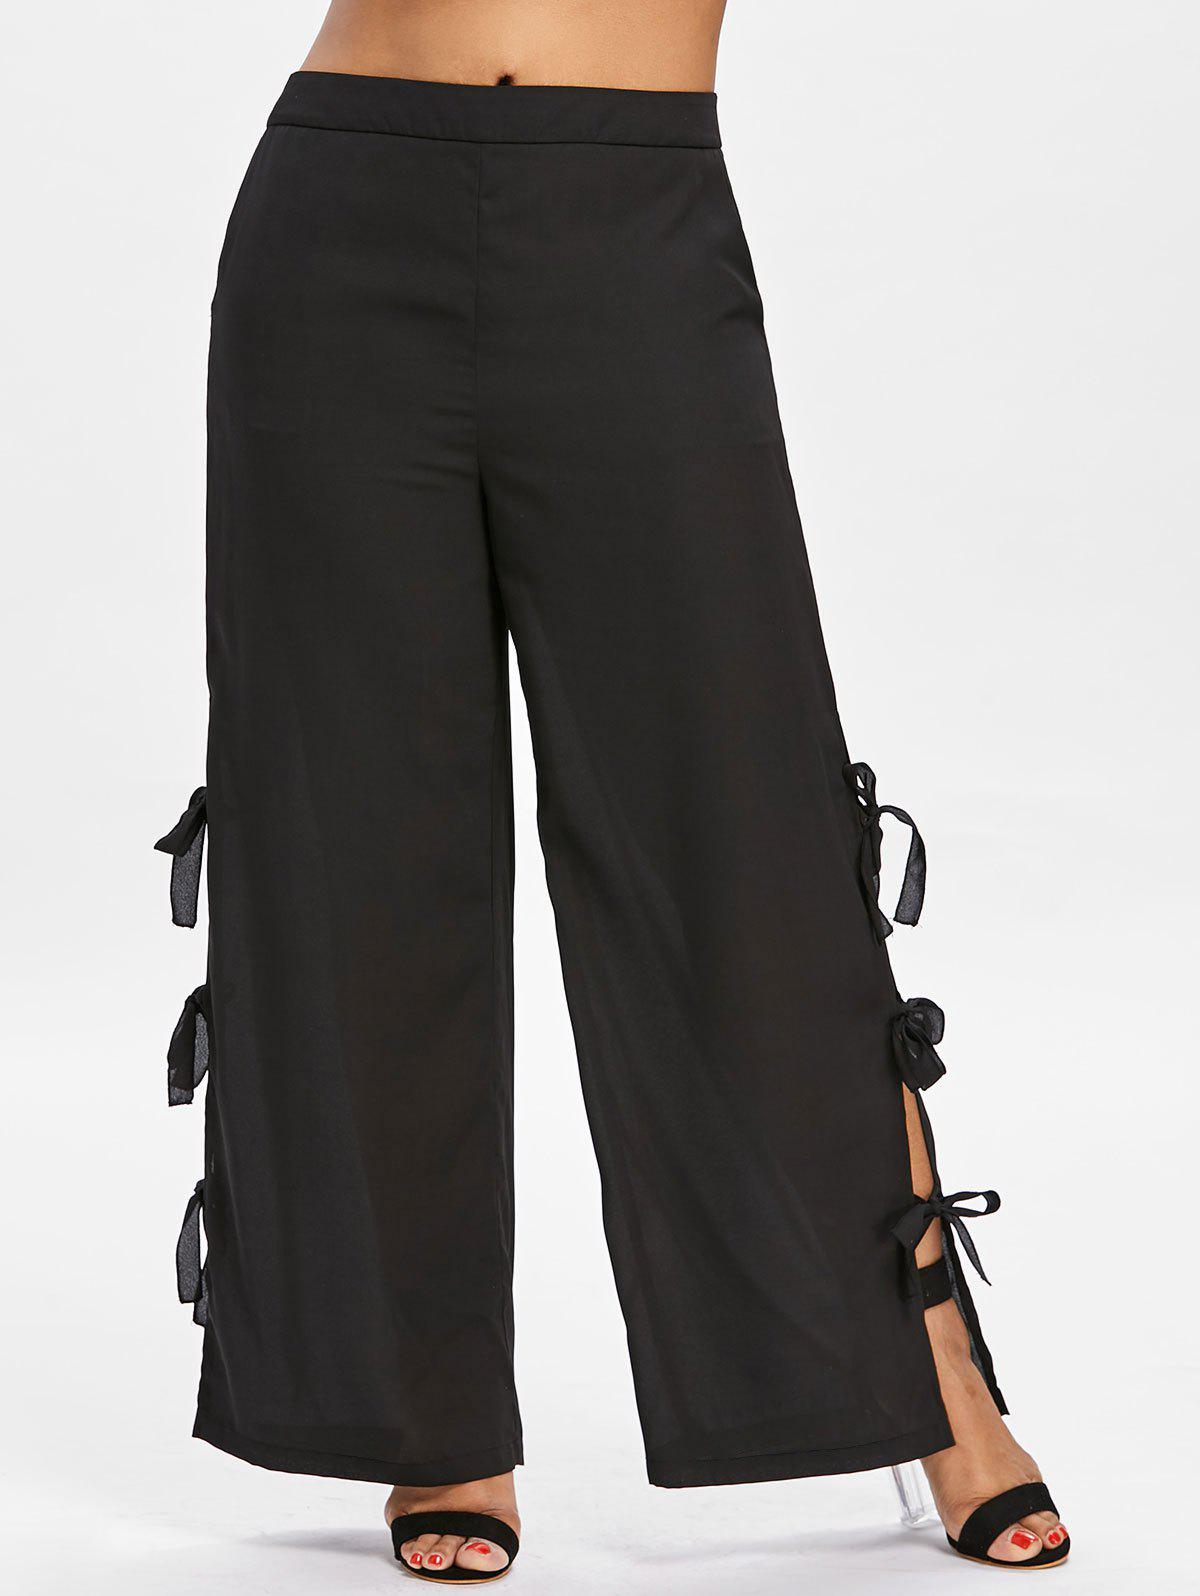 High Waisted Plus Size Wide Leg Pants - BLACK 4X